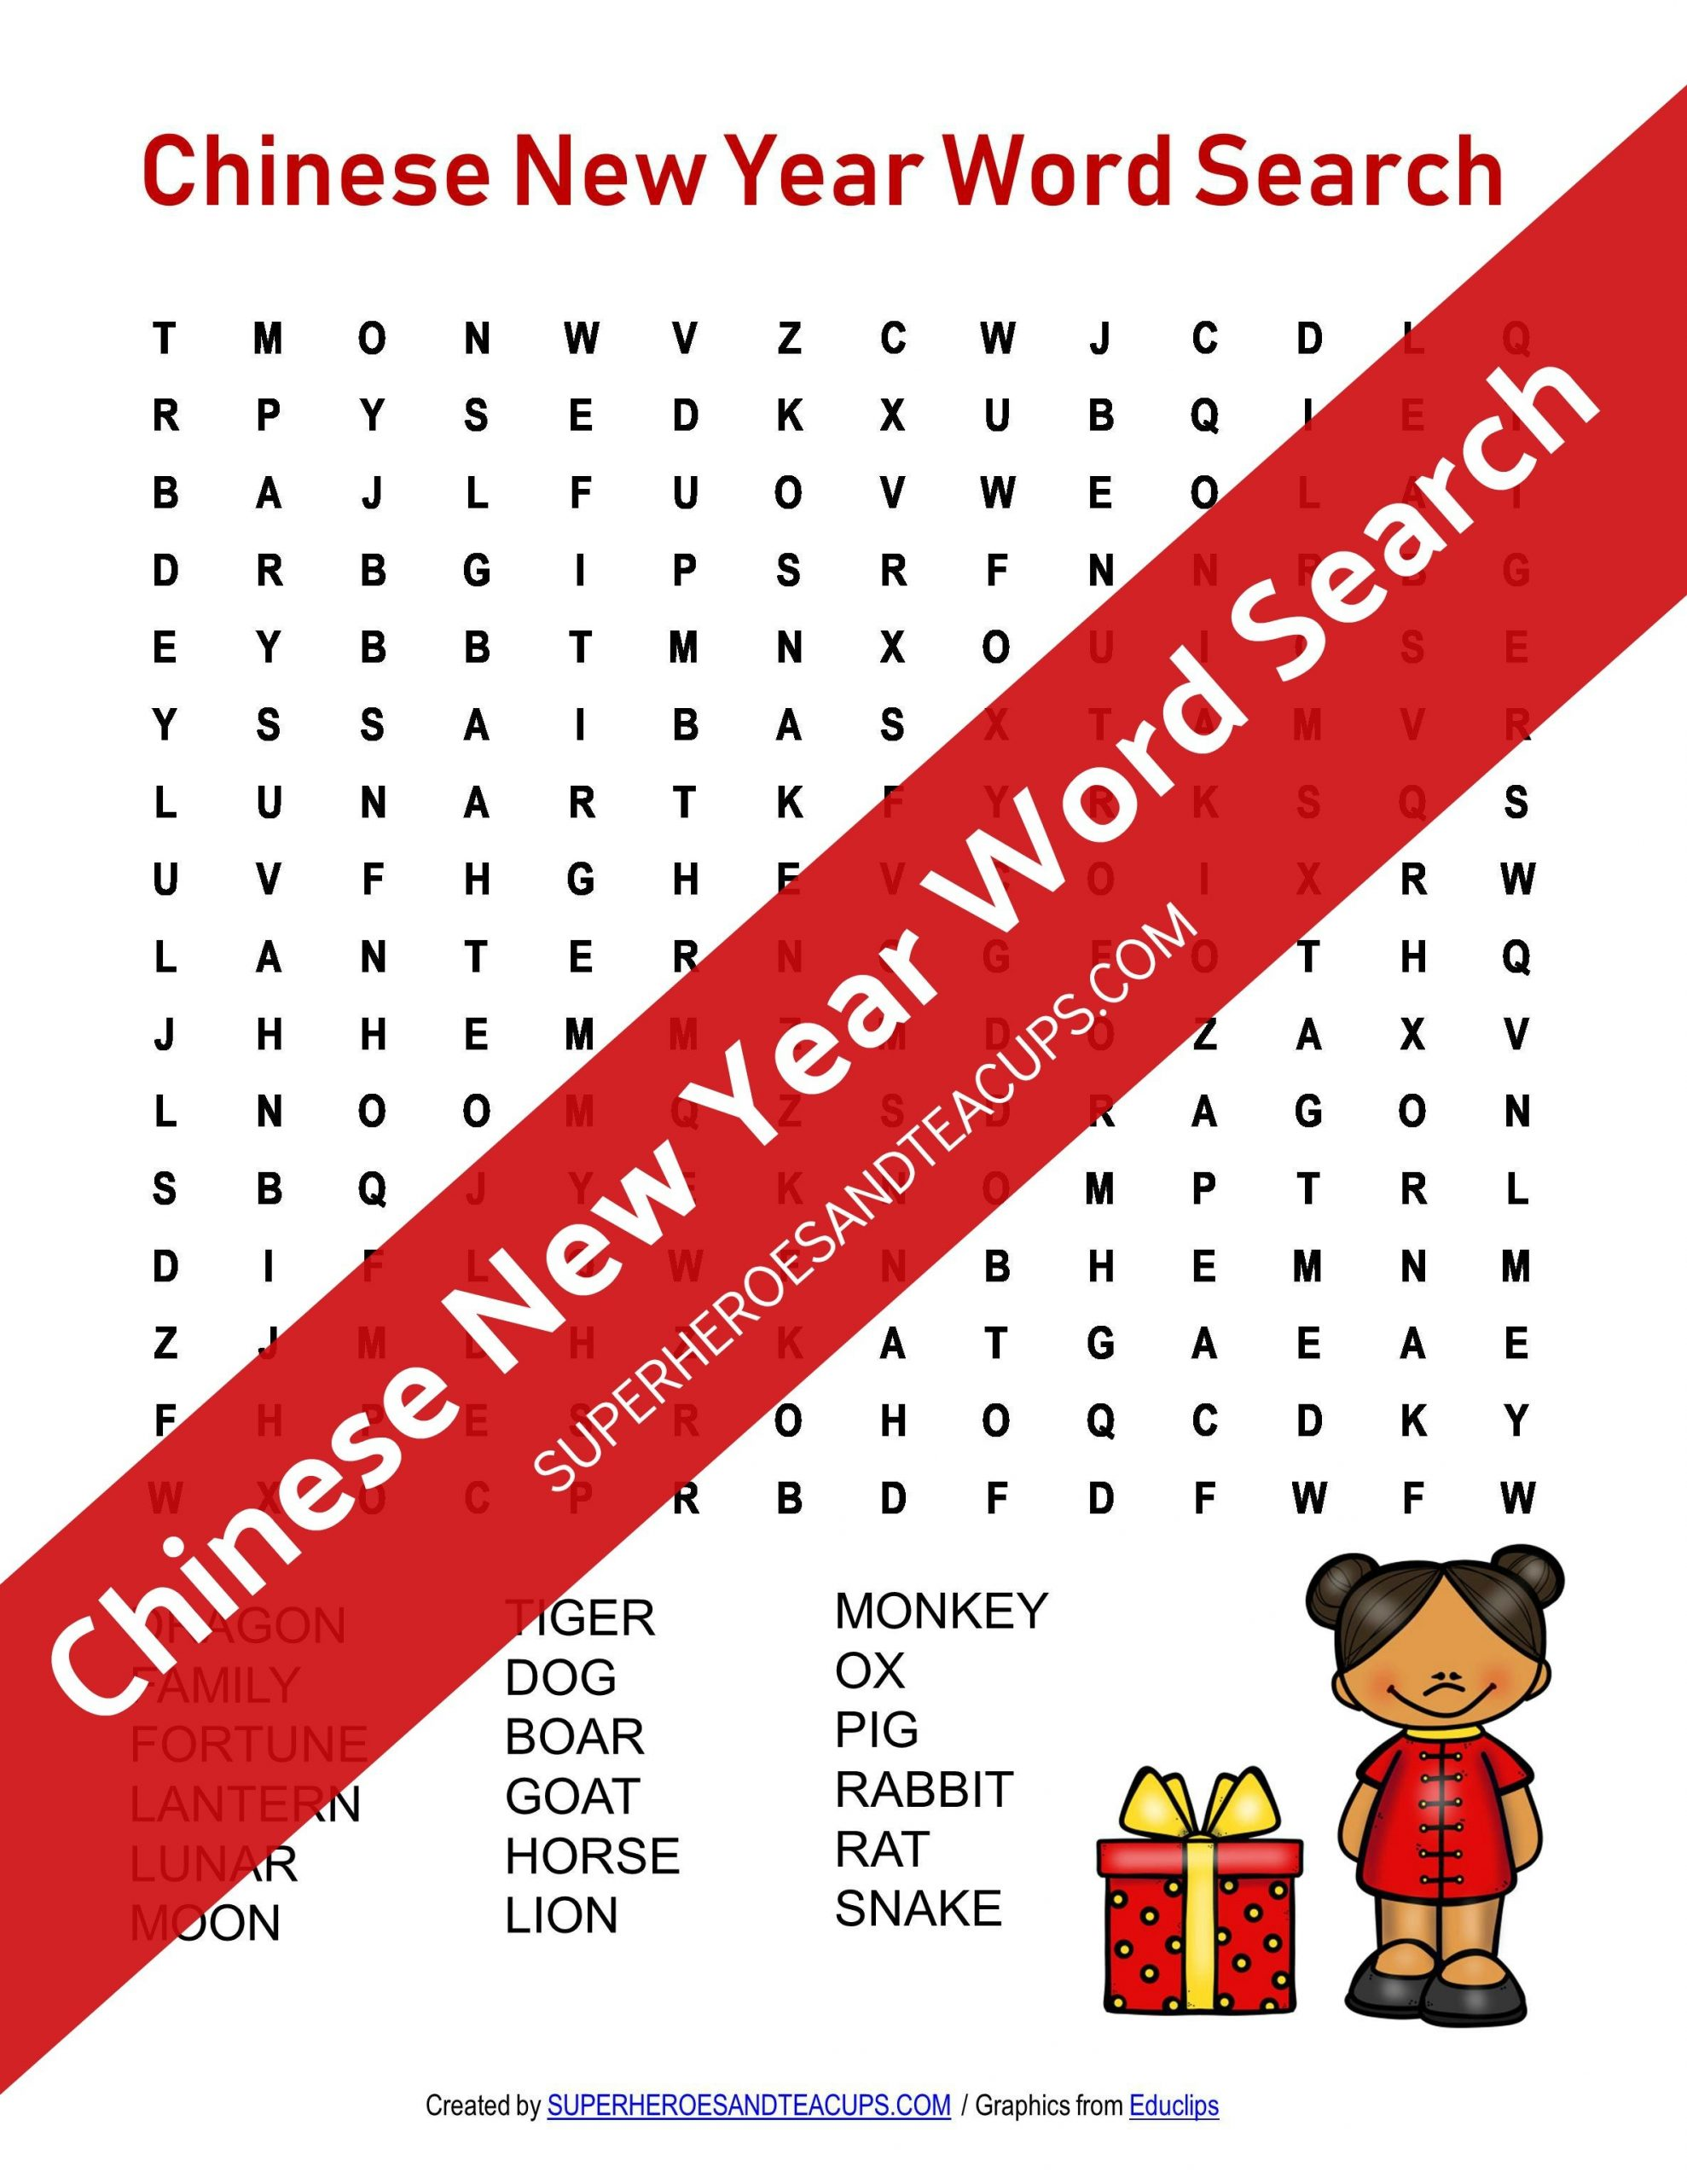 Chinese New Year Word Search Free Printable